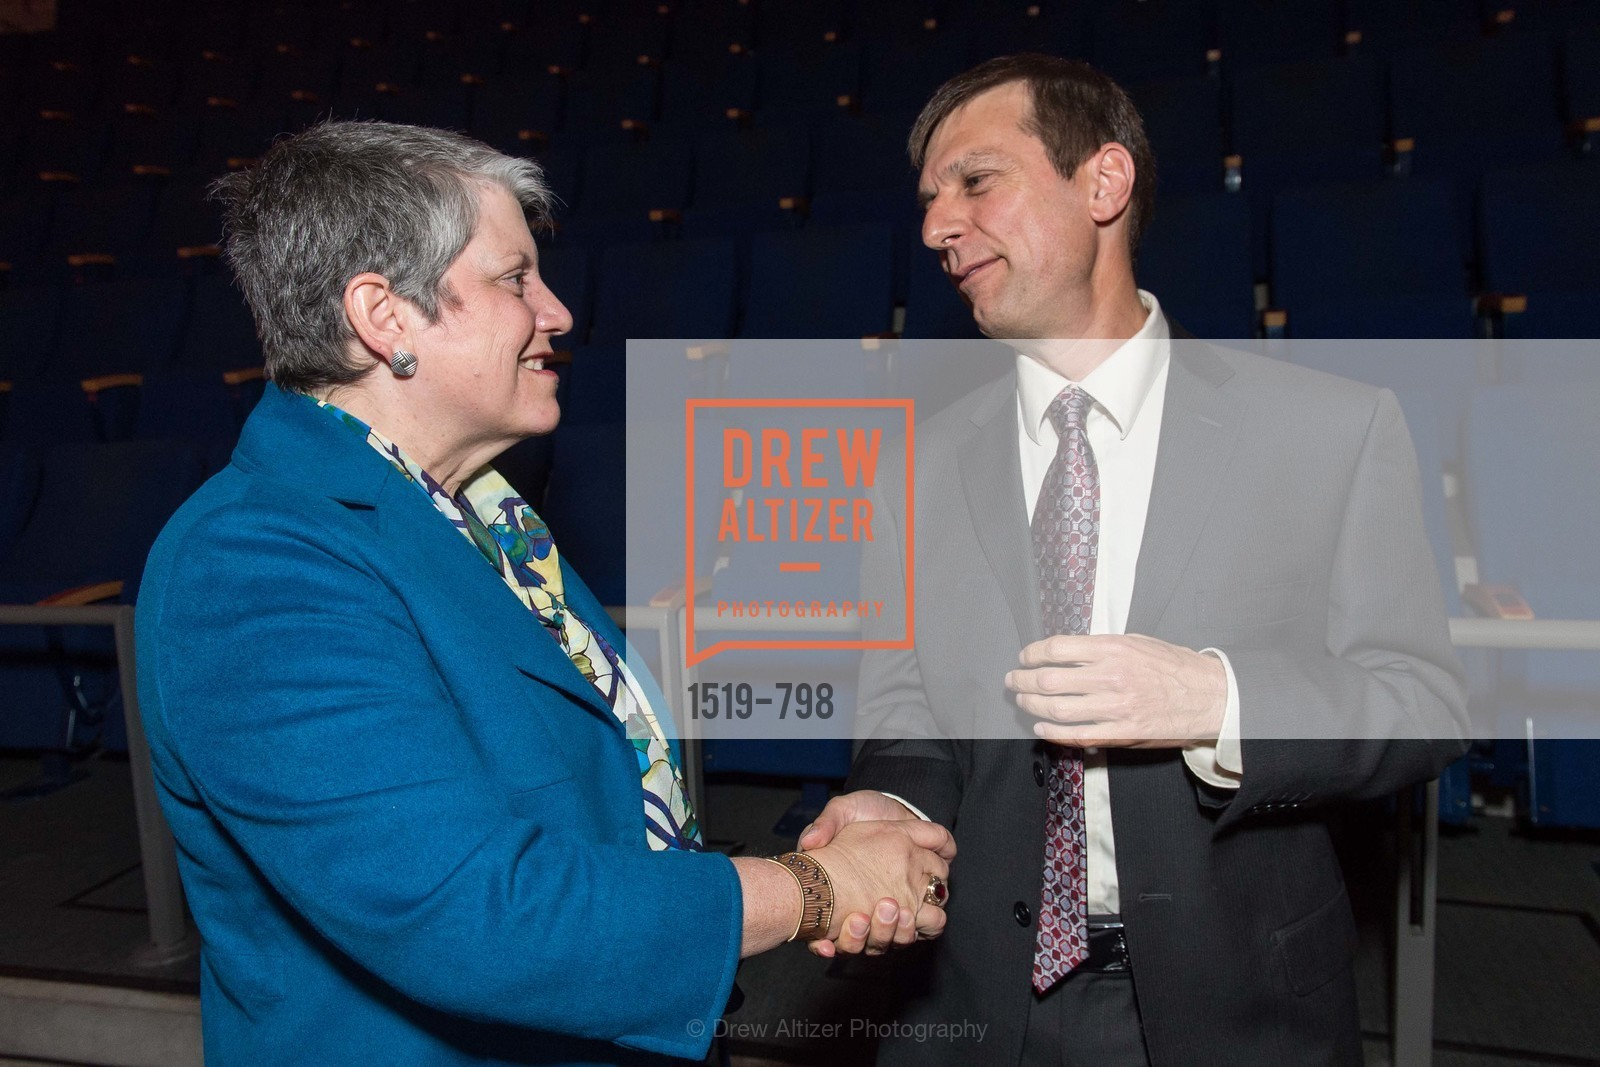 Janet Napolitano, CALIFORNIA ACADEMY OF SCIENCES - Big Bang Gala 2015, US, April 24th, 2015,Drew Altizer, Drew Altizer Photography, full-service event agency, private events, San Francisco photographer, photographer California